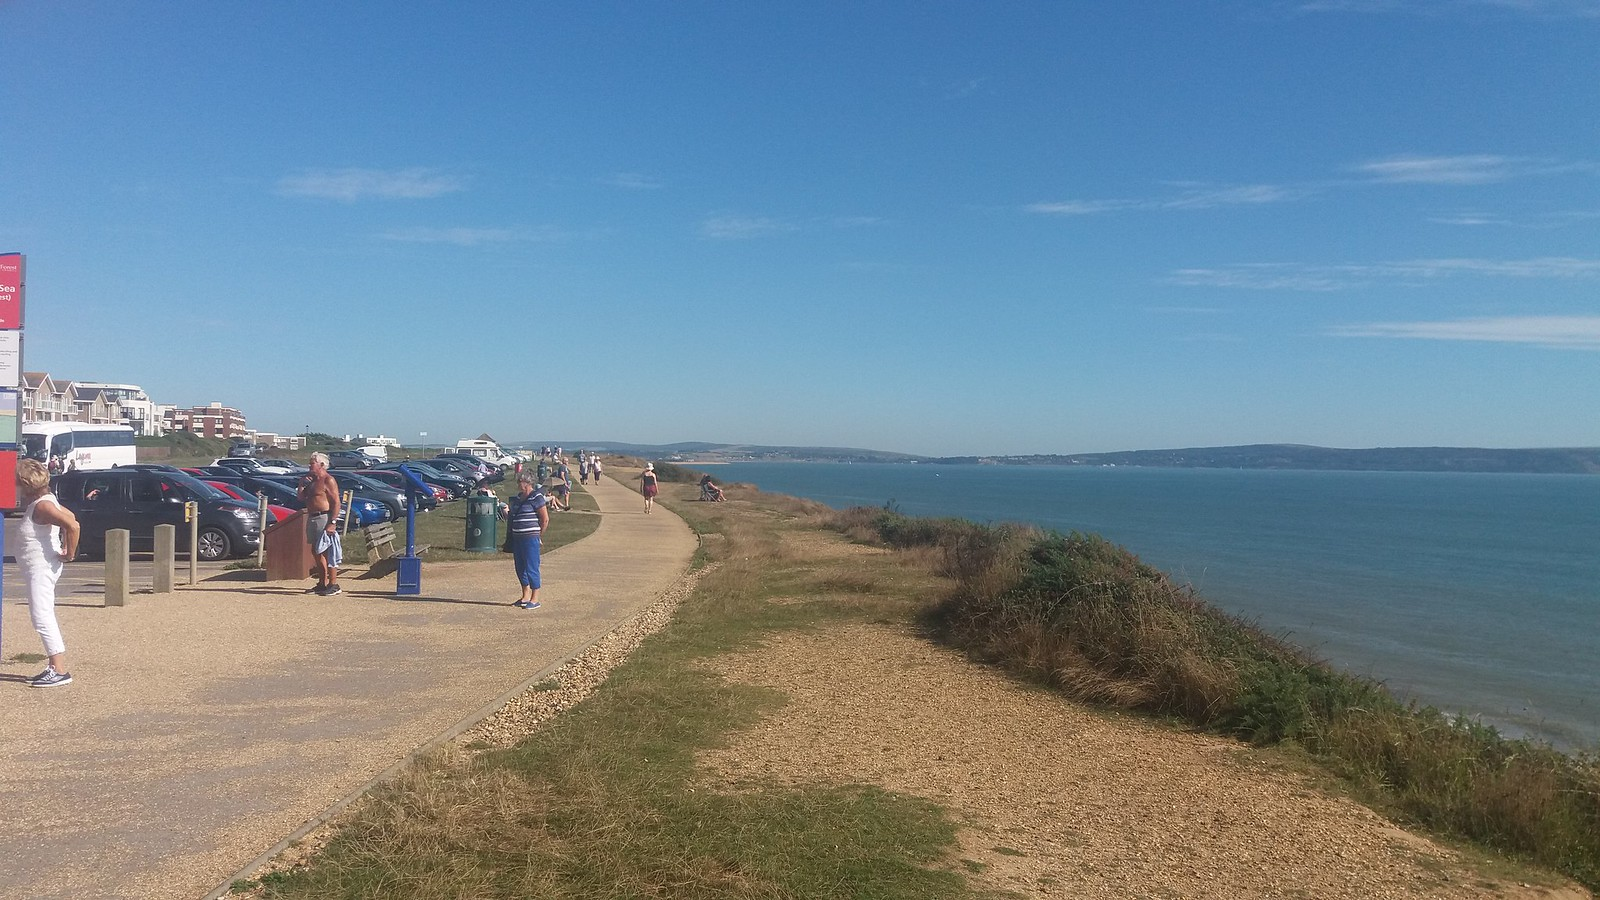 20160907_154700 cliff top path west of Milford on Sea